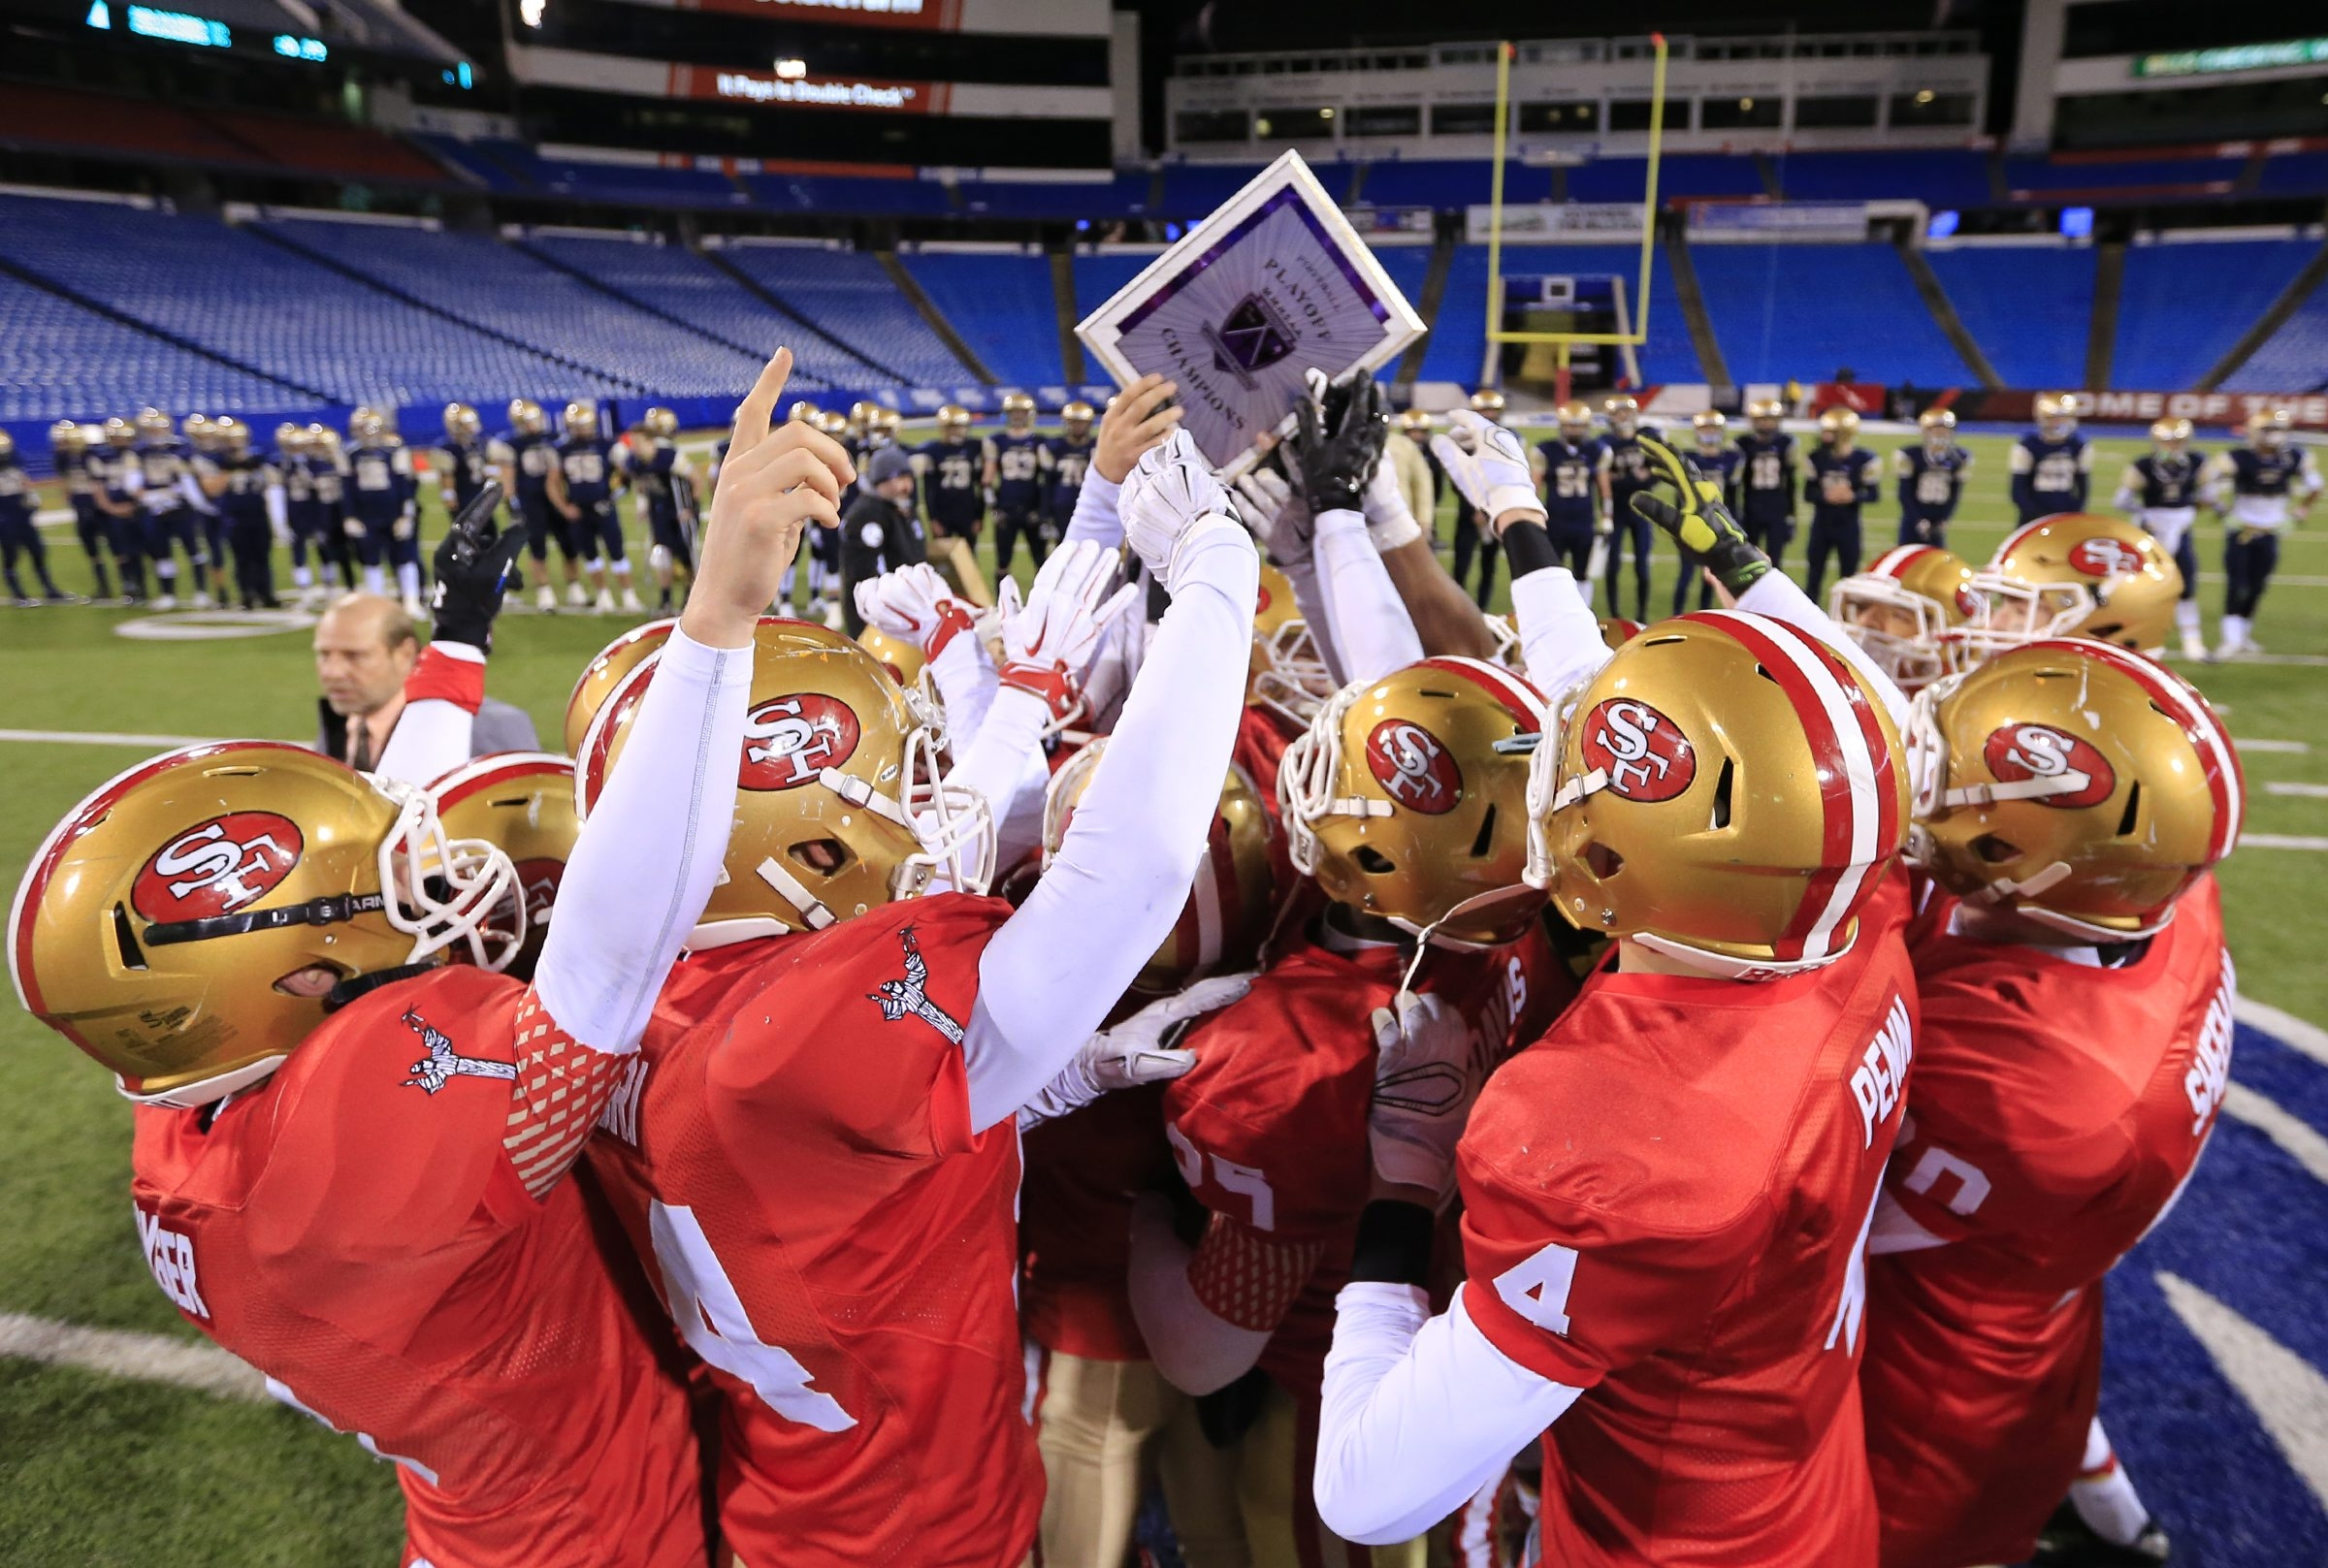 St. Francis celebrates a victory over Canisius in last year's final.